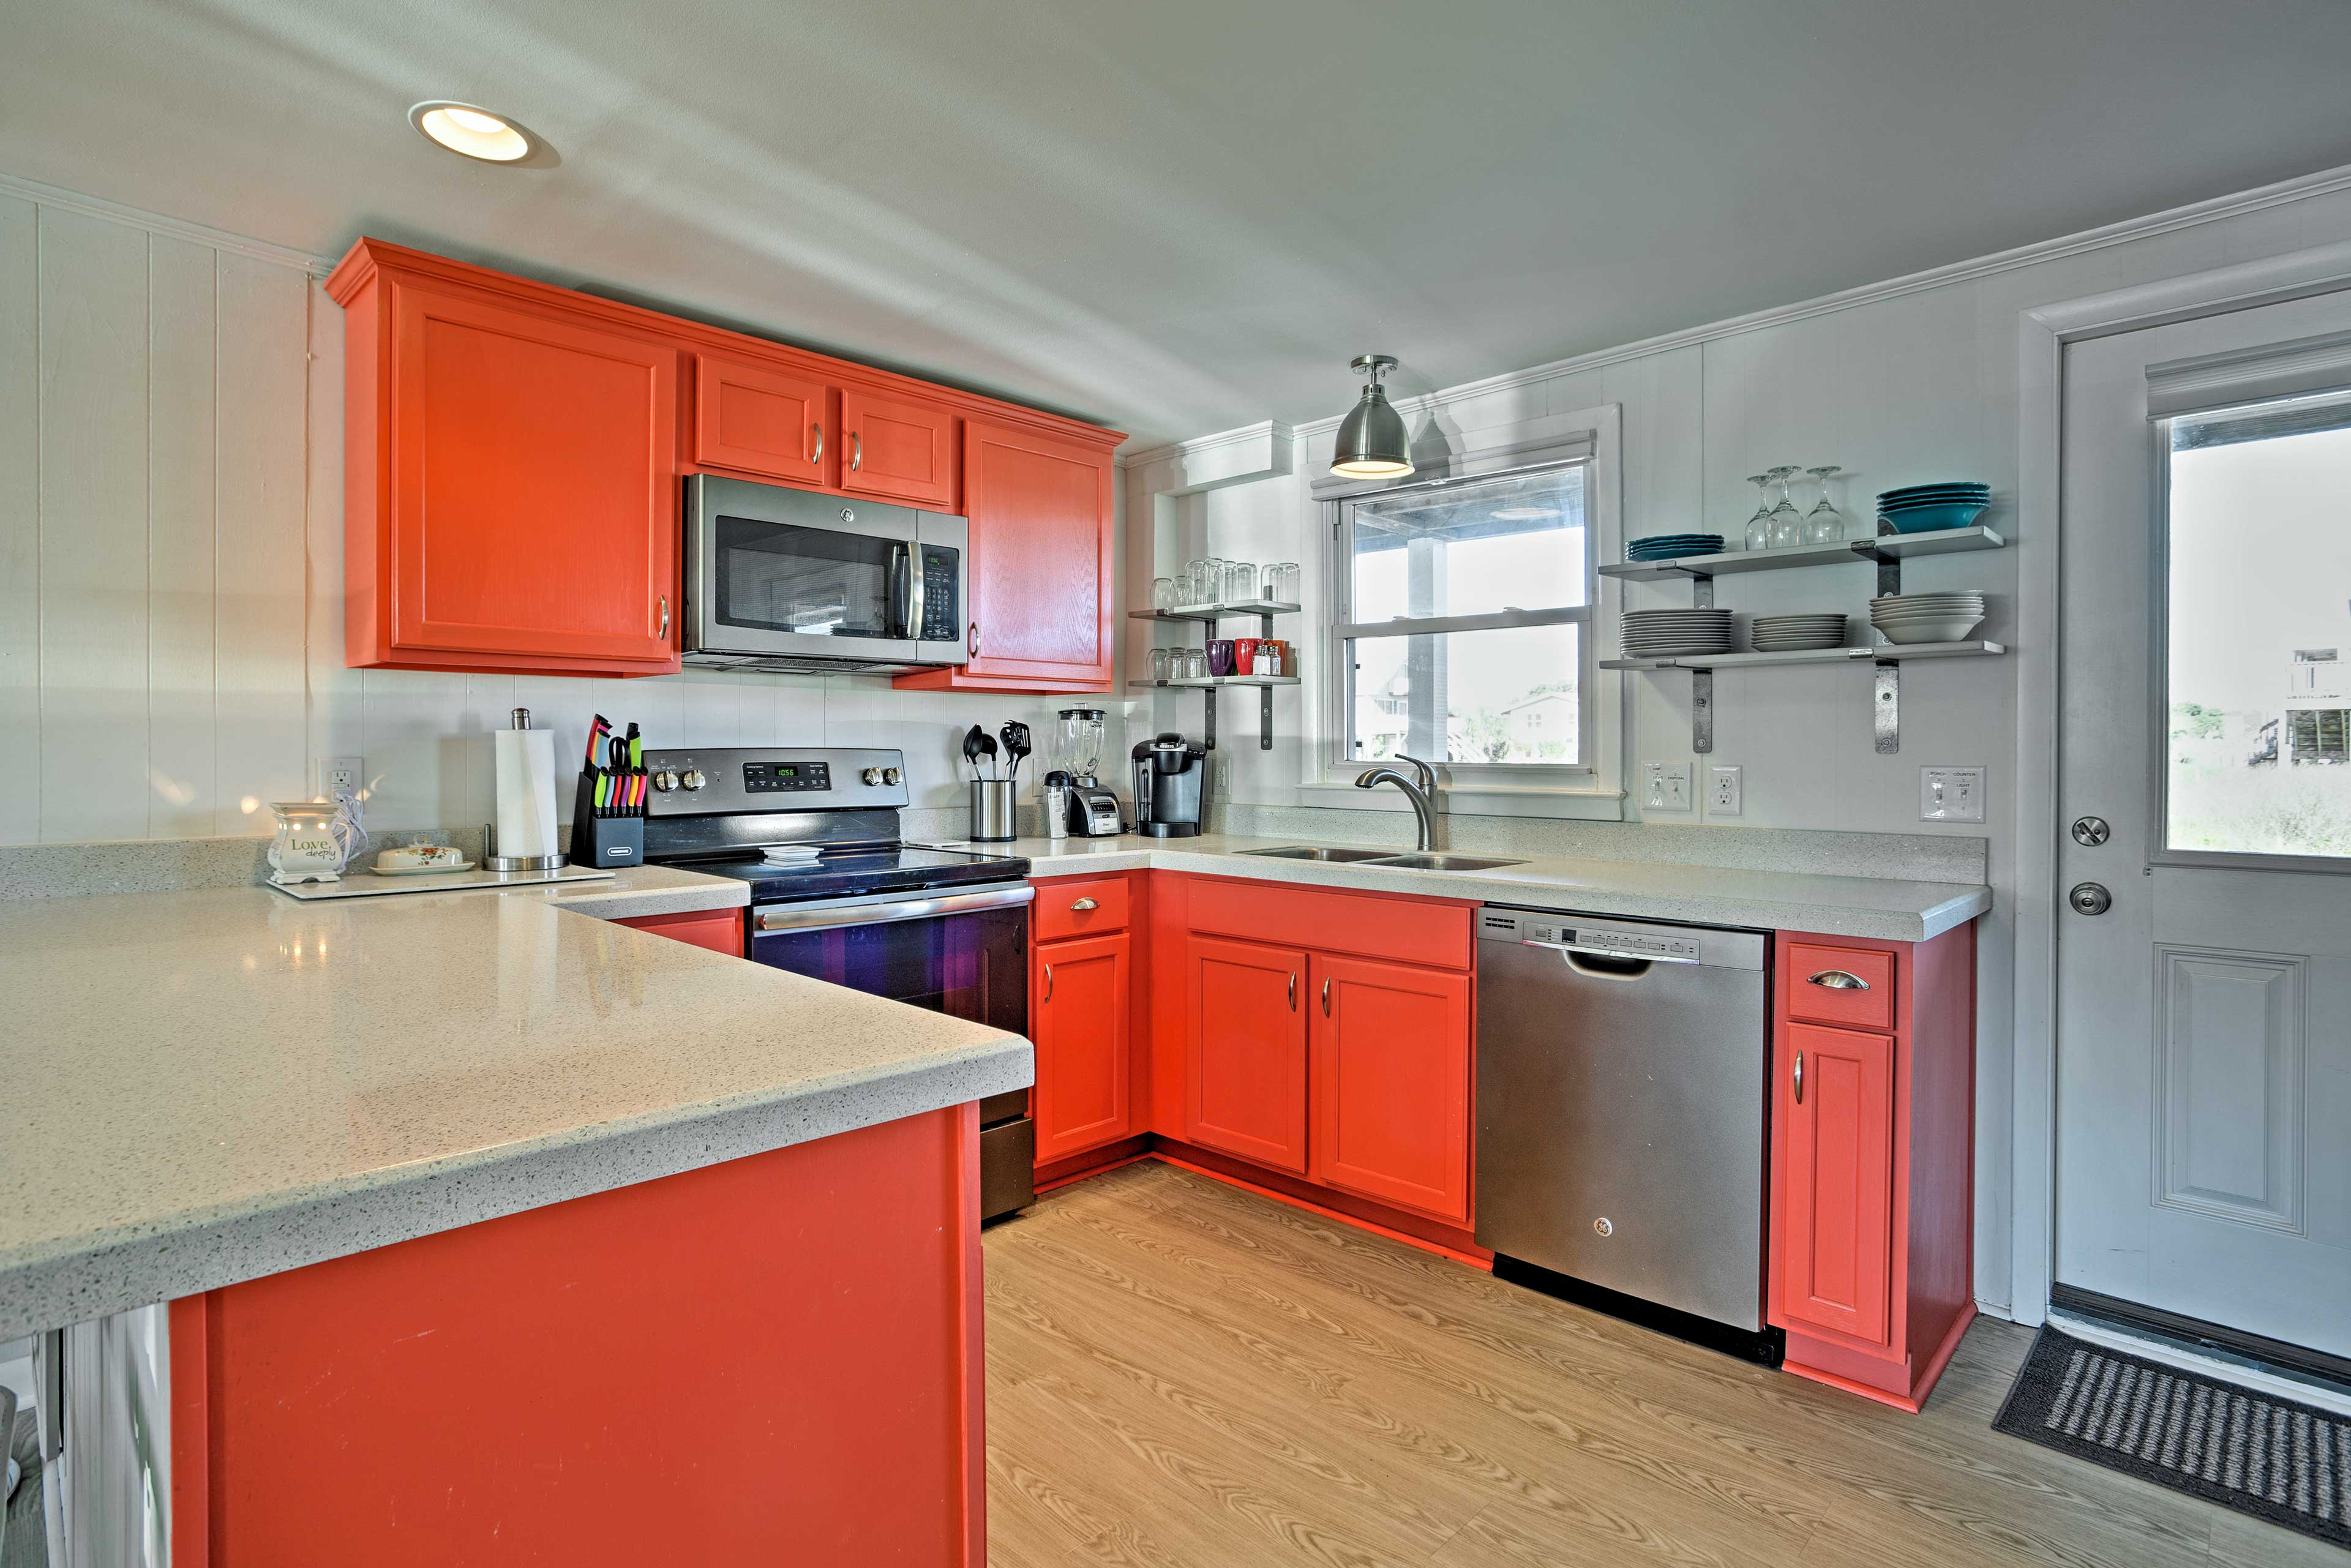 This kitchen comes fully equipped with everything you'll need to prepare meals.